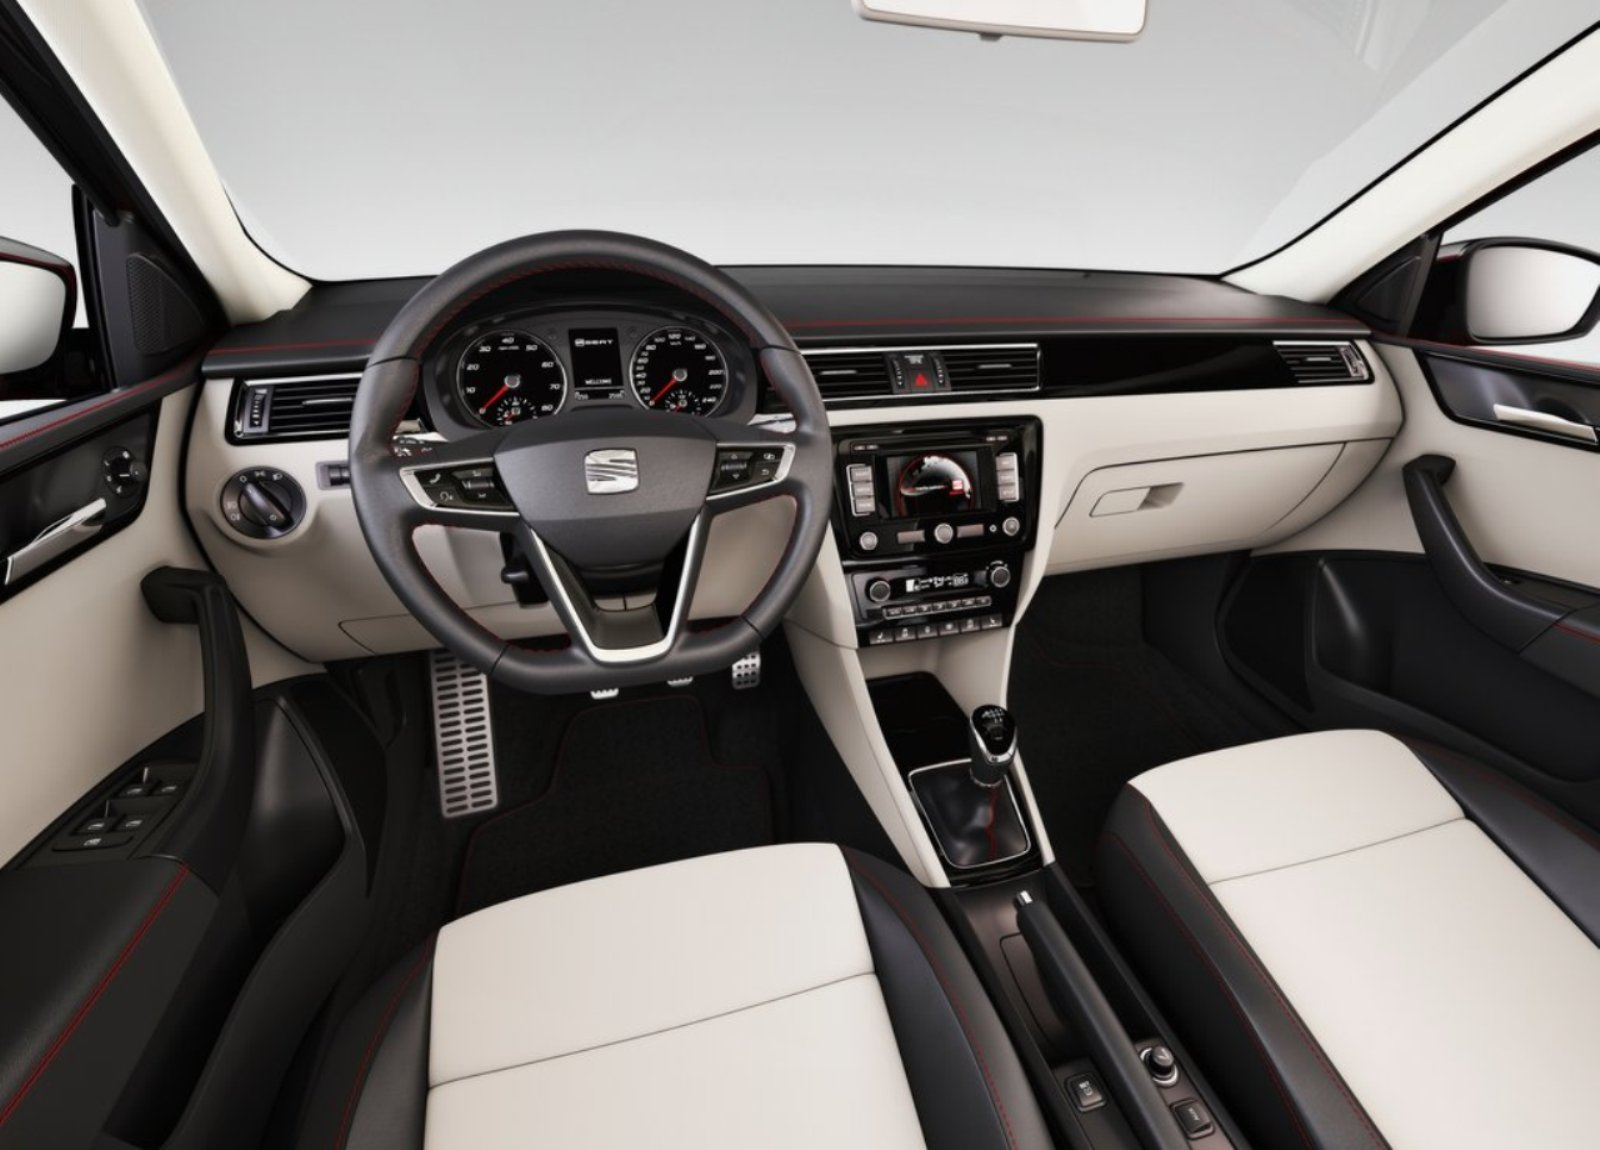 Seat toledo review and photos for Seat cordoba interior